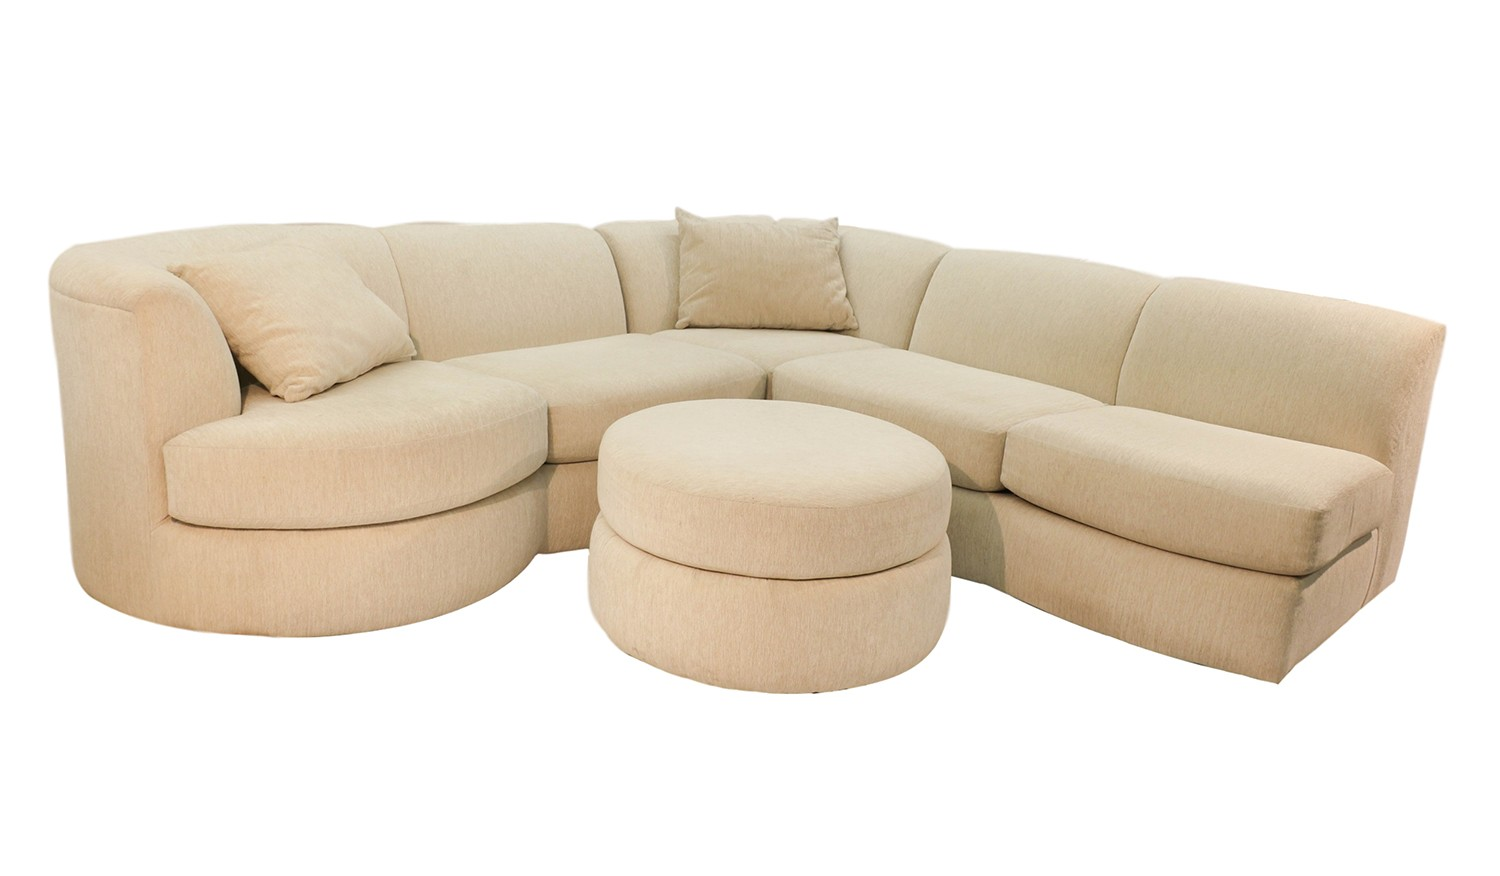 Weiman mid century modern sectional sofa with ottoman for Modern sectional sofas